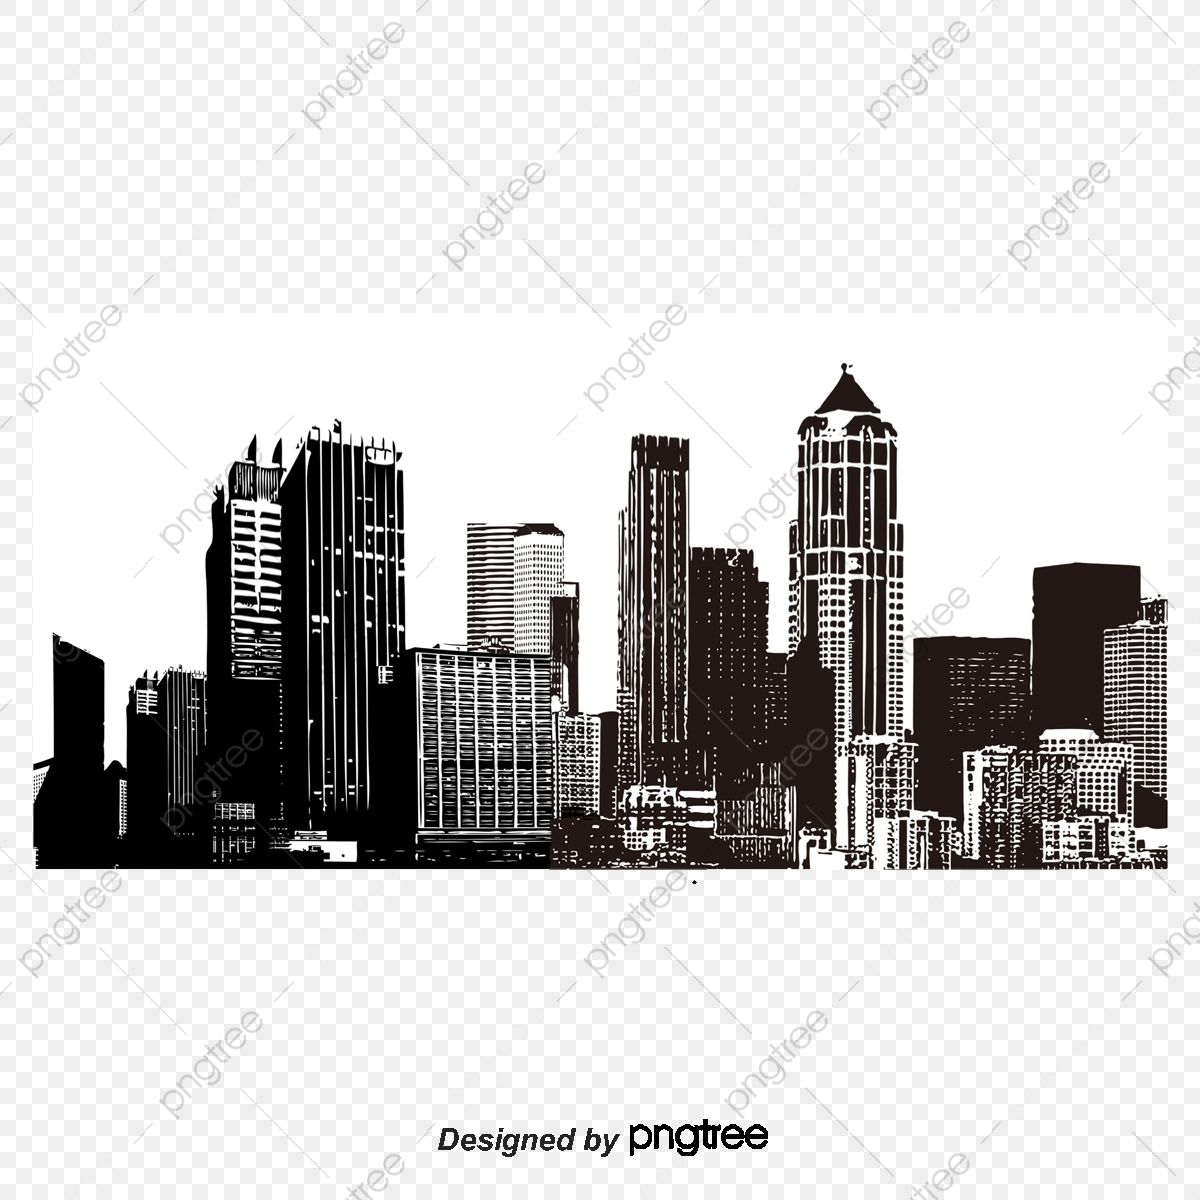 Pictures Of The Famous City Building City Clipart City Vector Building Vector Png Transparent Clipart Image And Psd File For Free Download In 2021 City Vector City Buildings Building Silhouette